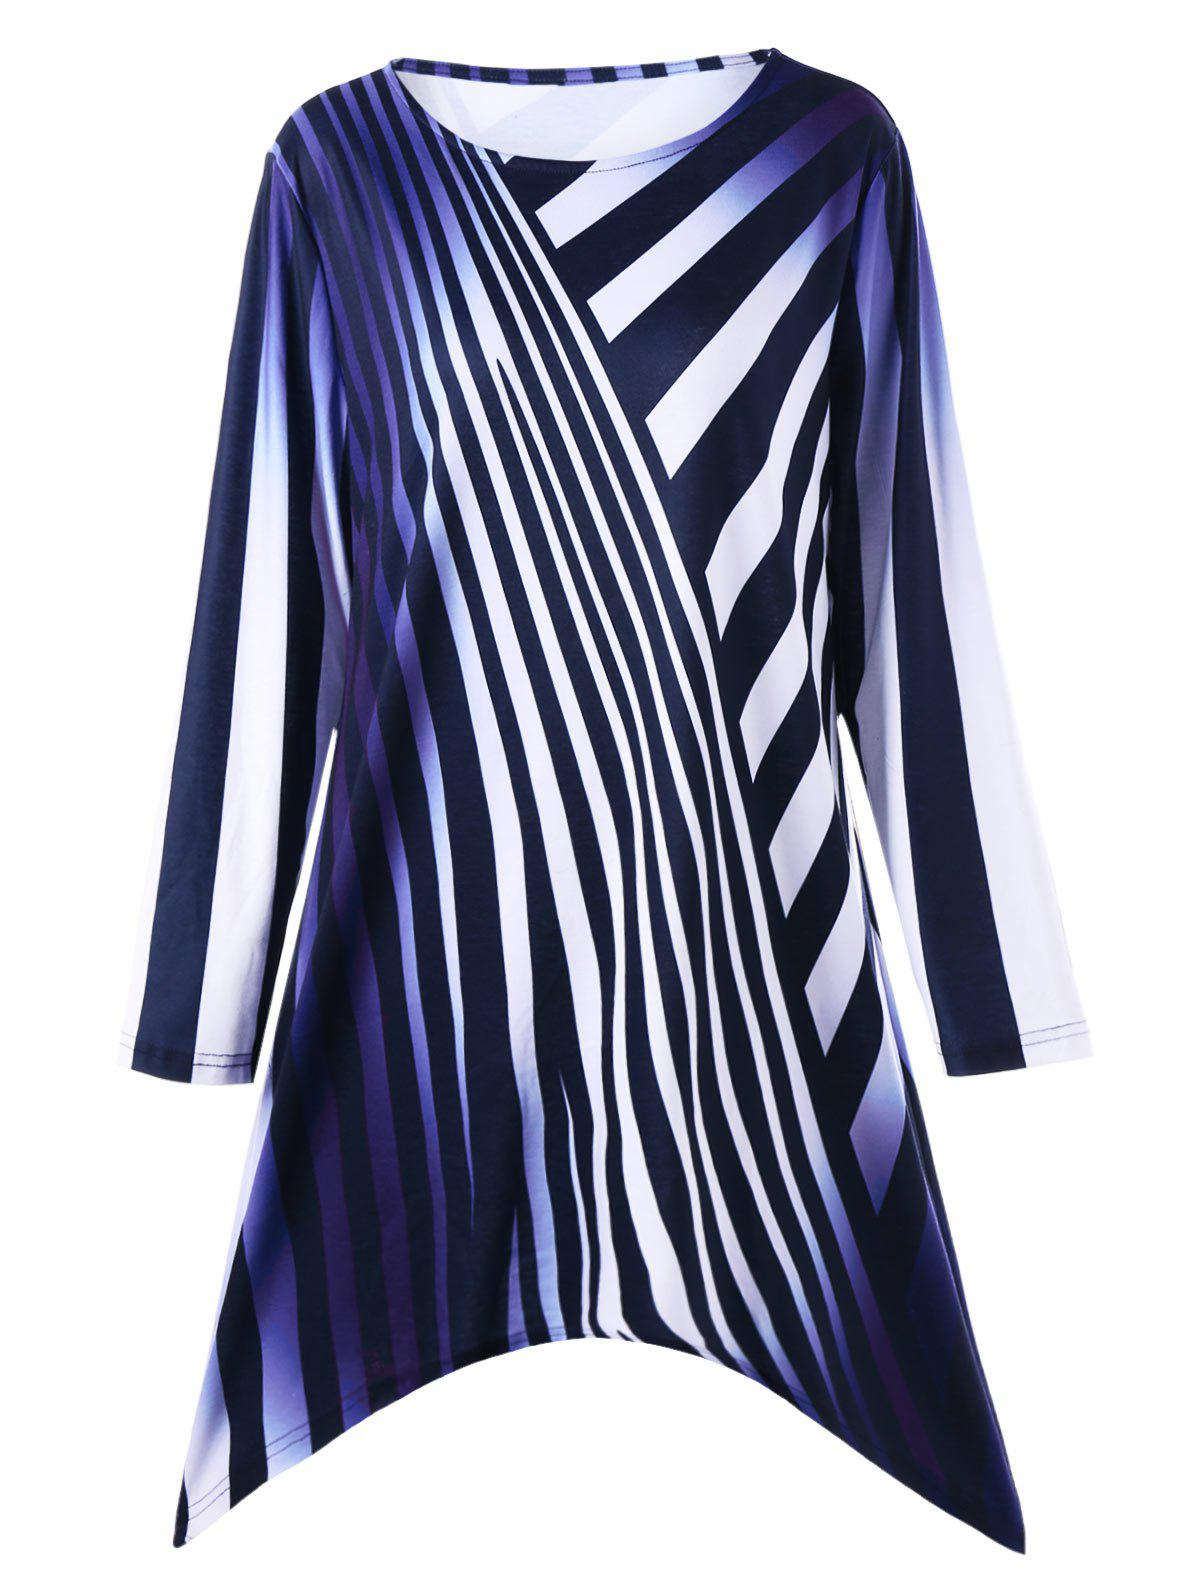 Plus Size Ombre Striped Longline T-shirtWOMEN<br><br>Size: 4XL; Color: BLUE; Material: Polyester,Spandex; Shirt Length: Long; Sleeve Length: Full; Collar: Round Neck; Style: Casual; Season: Fall,Spring; Pattern Type: Striped; Weight: 0.3300kg; Package Contents: 1 x Top;